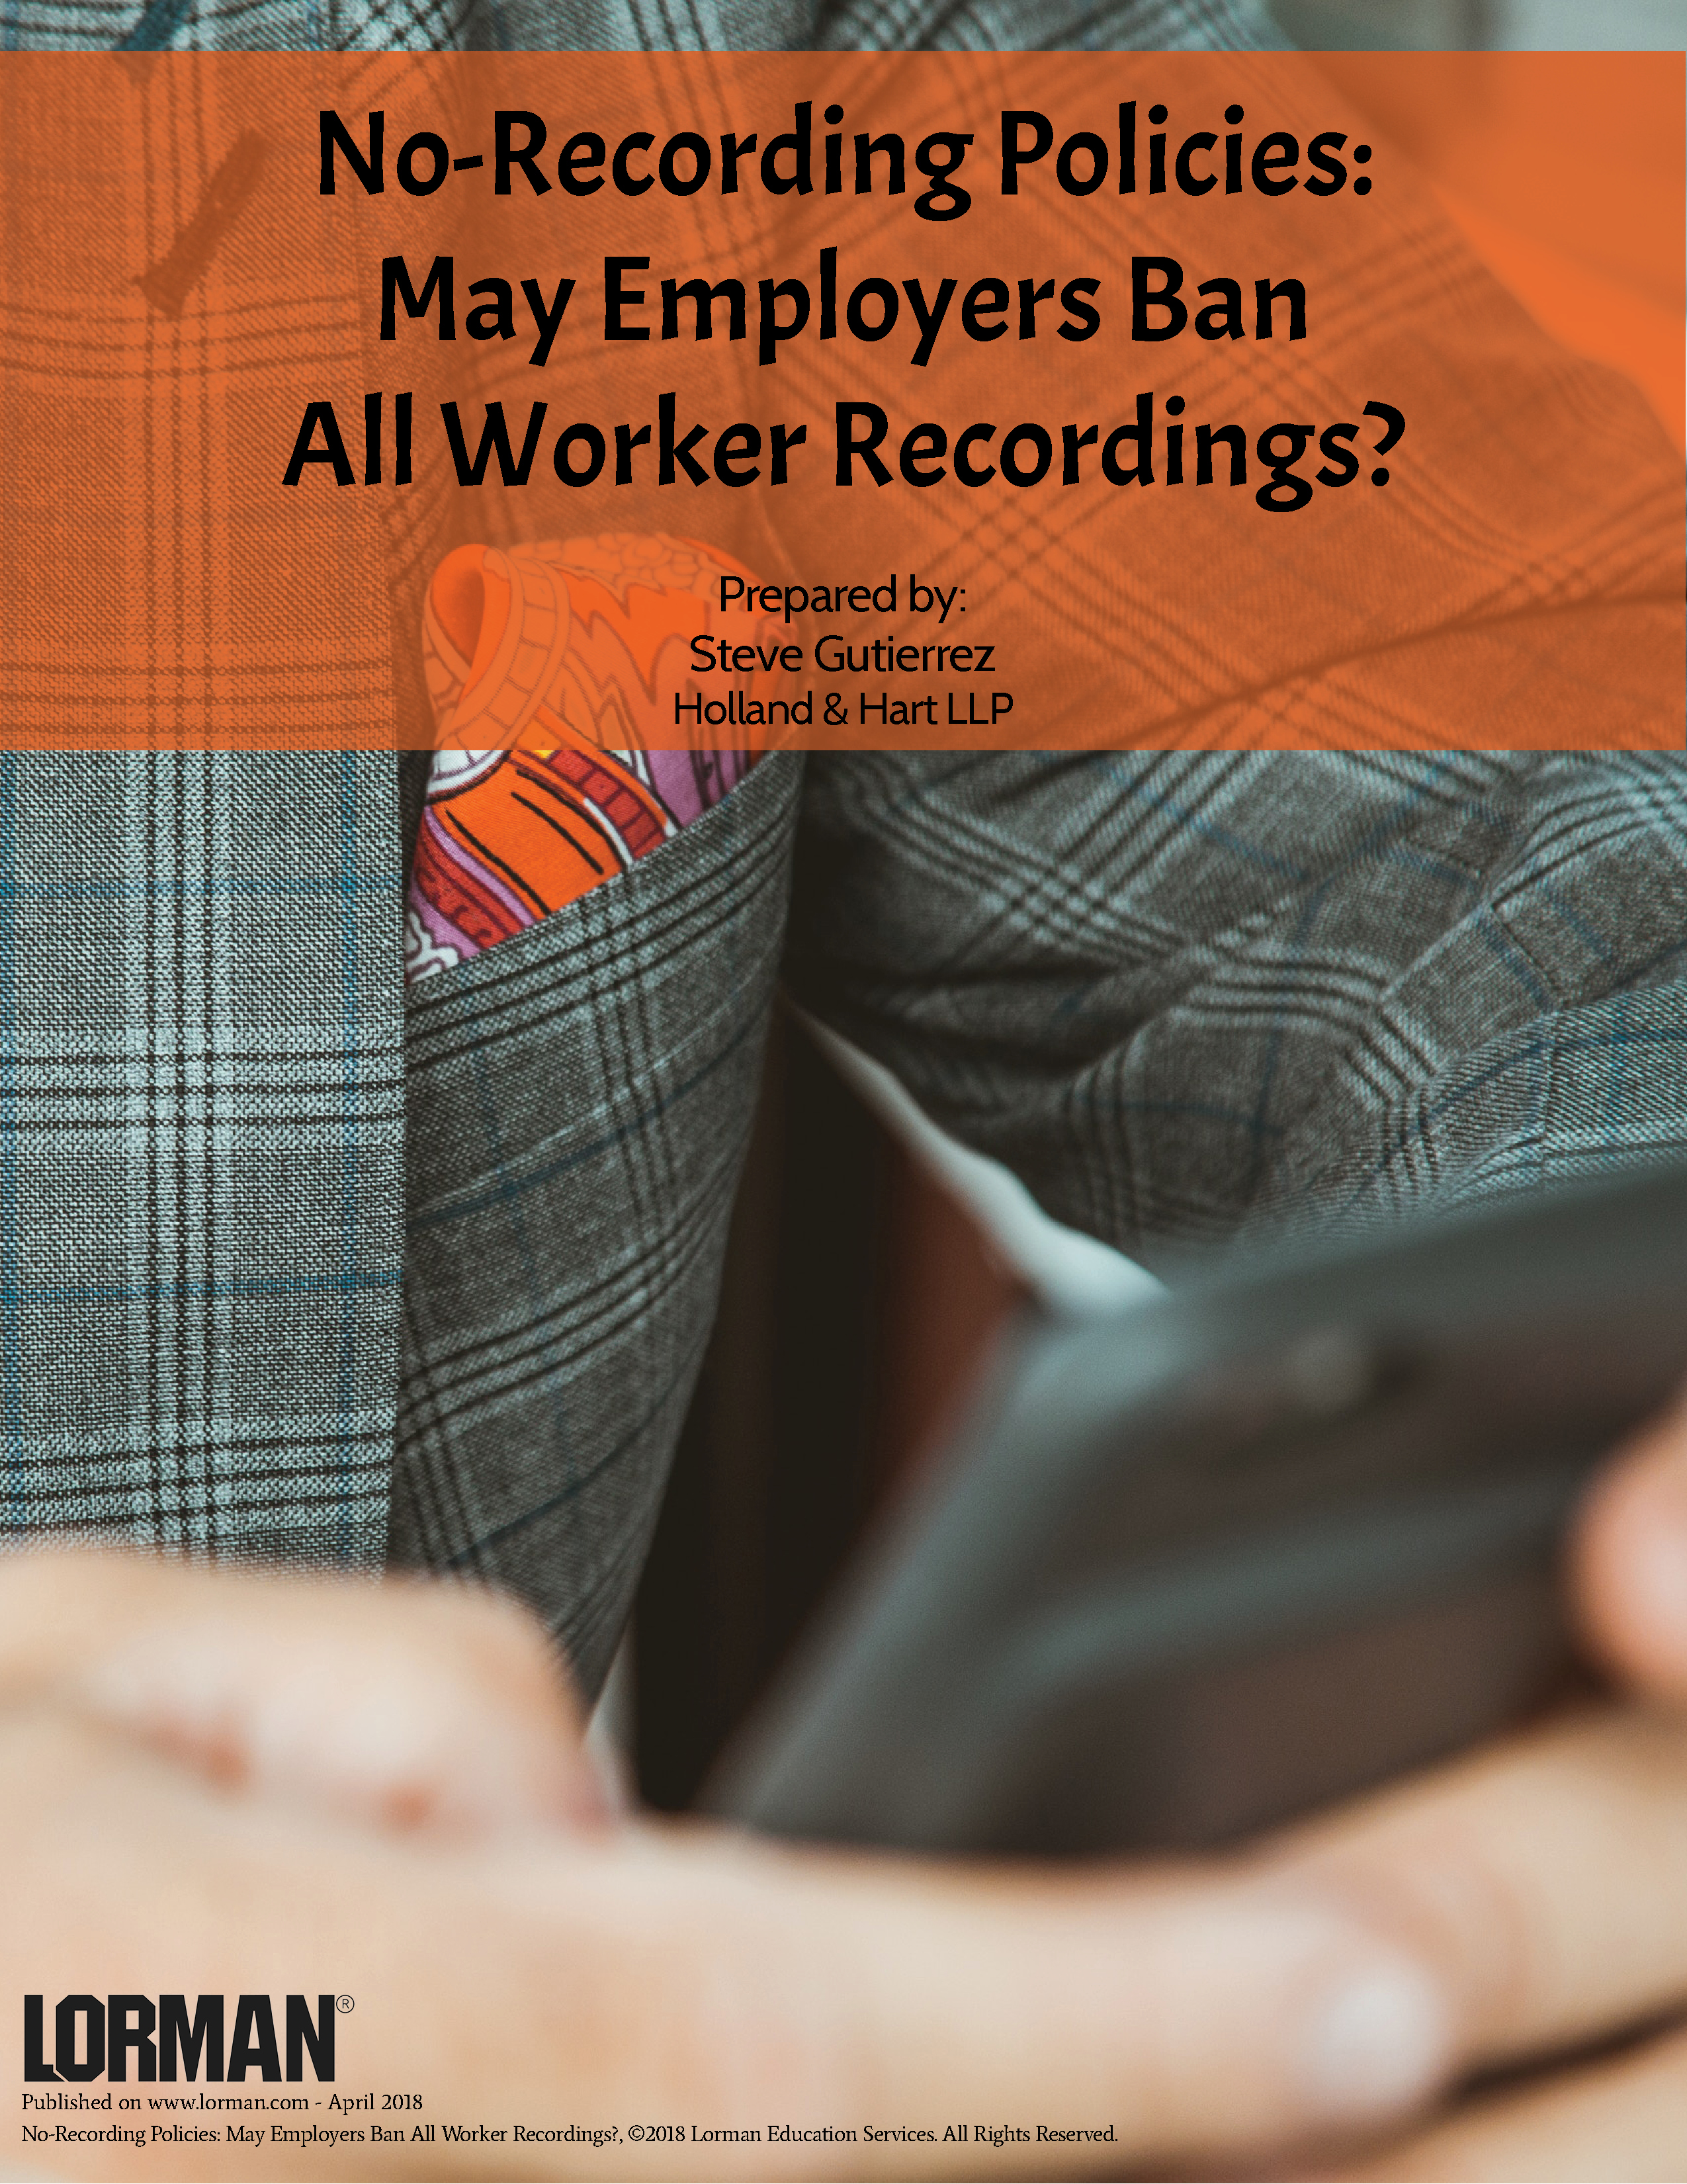 No-Recording Policies: May Employers Ban All Worker Recordings?